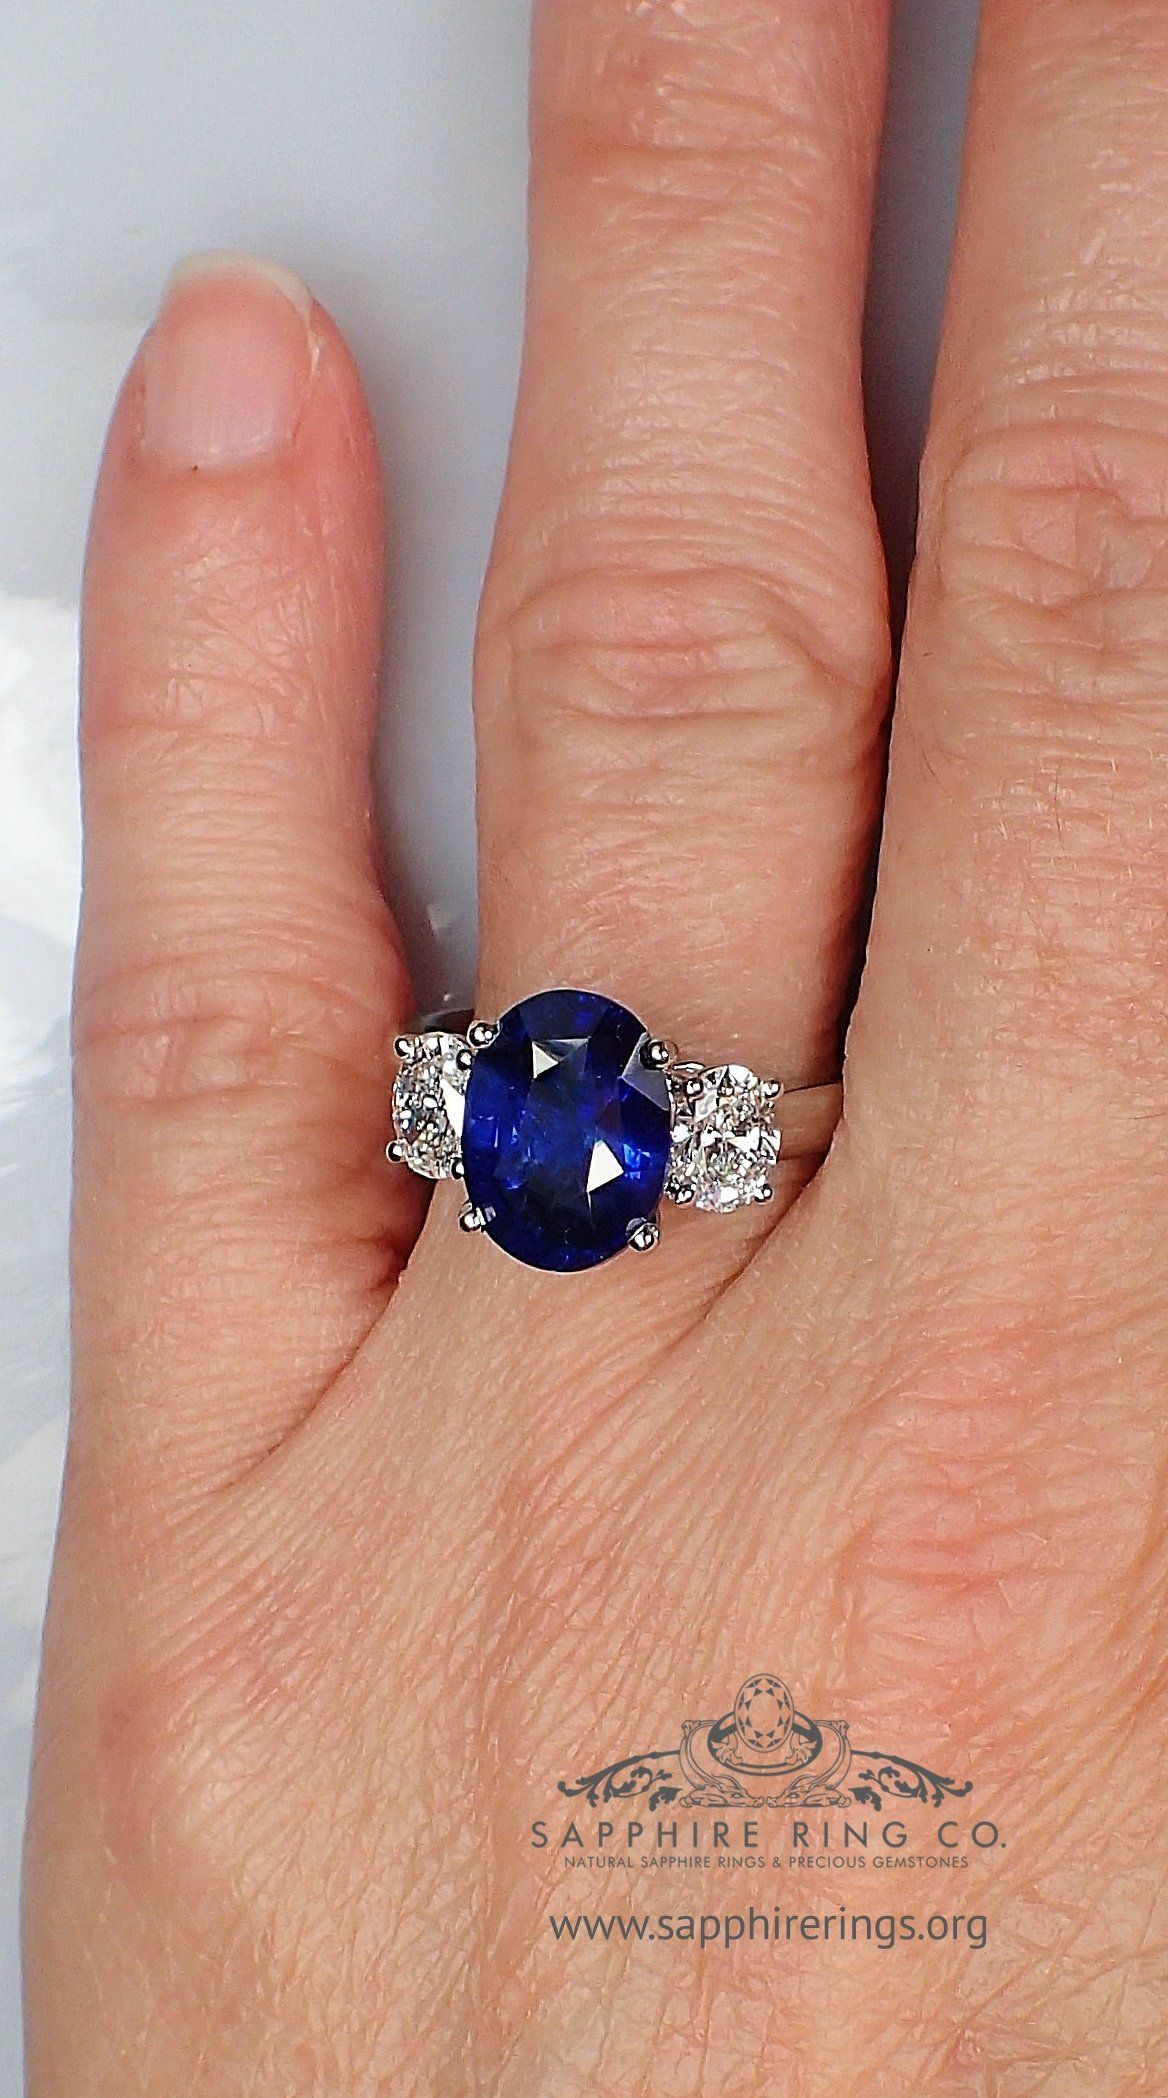 Search Results For Sapphire Jewelry 3 Stone Platinum Sapphire Ring 3189i Blue Topaz Engagement Ring Engagement Rings Sapphire Platinum Sapphire Ring